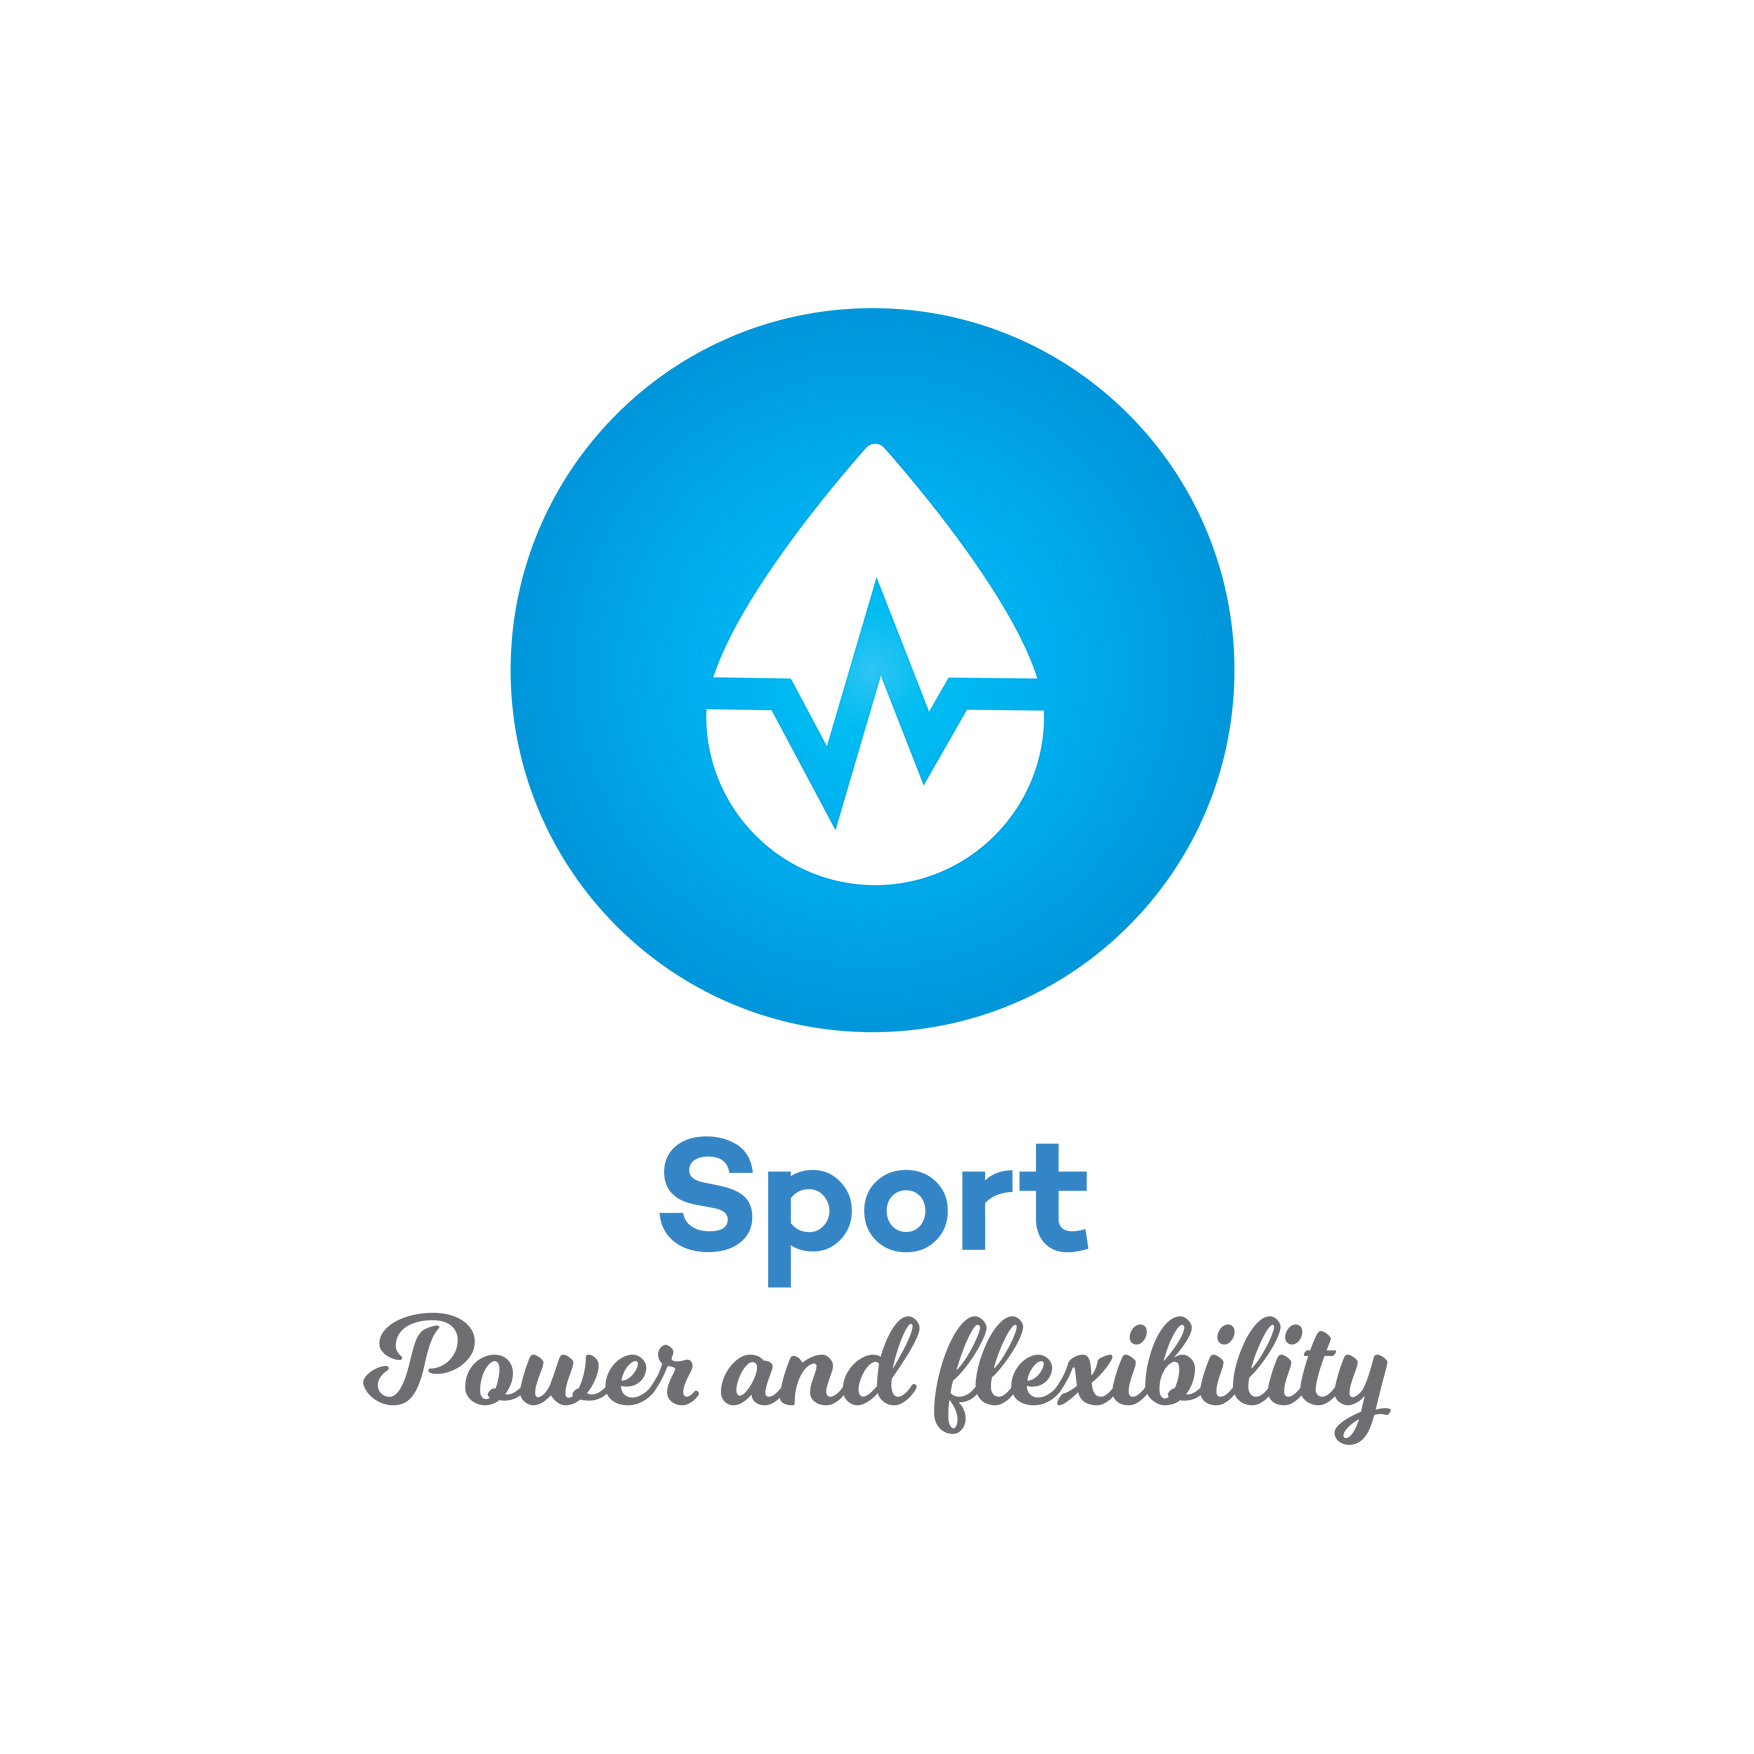 Sport - Power and flexibility